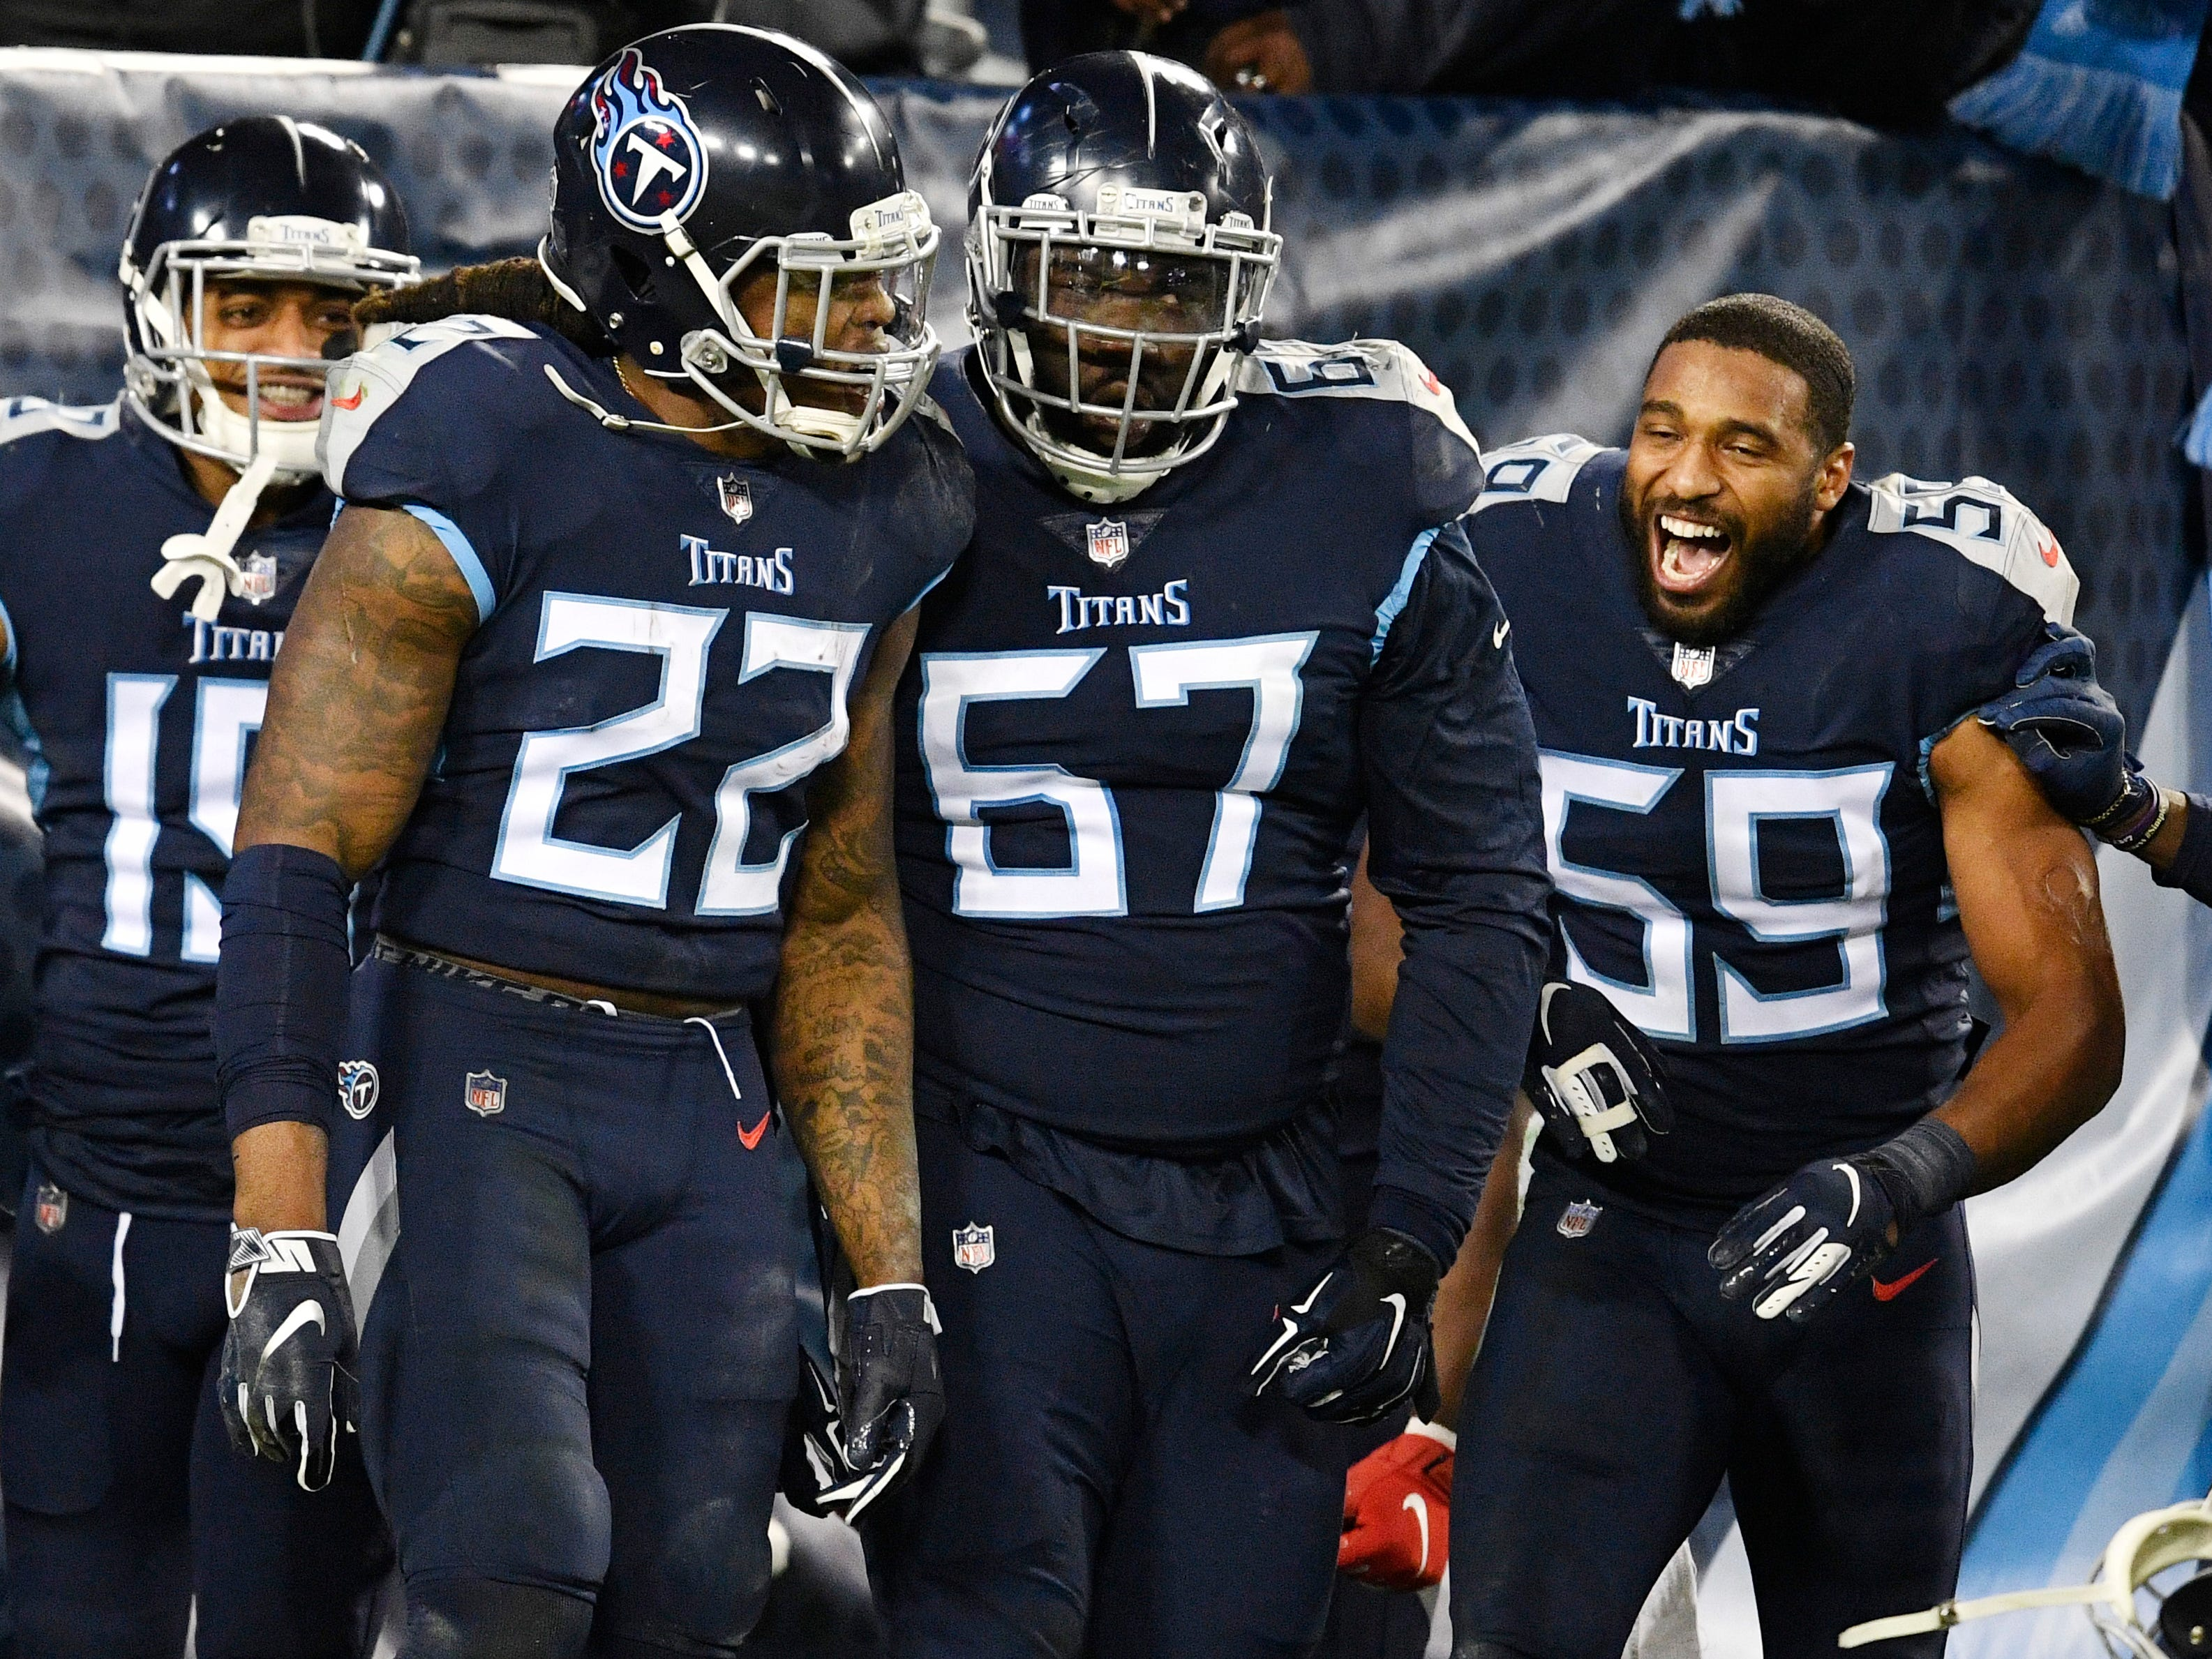 Titans running back Derrick Henry (22) celebrates his touchdown with guard Quinton Spain (67) and linebacker Wesley Woodyard (59) in the second quarter at Nissan Stadium Thursday, Dec. 6, 2018, in Nashville, Tenn.